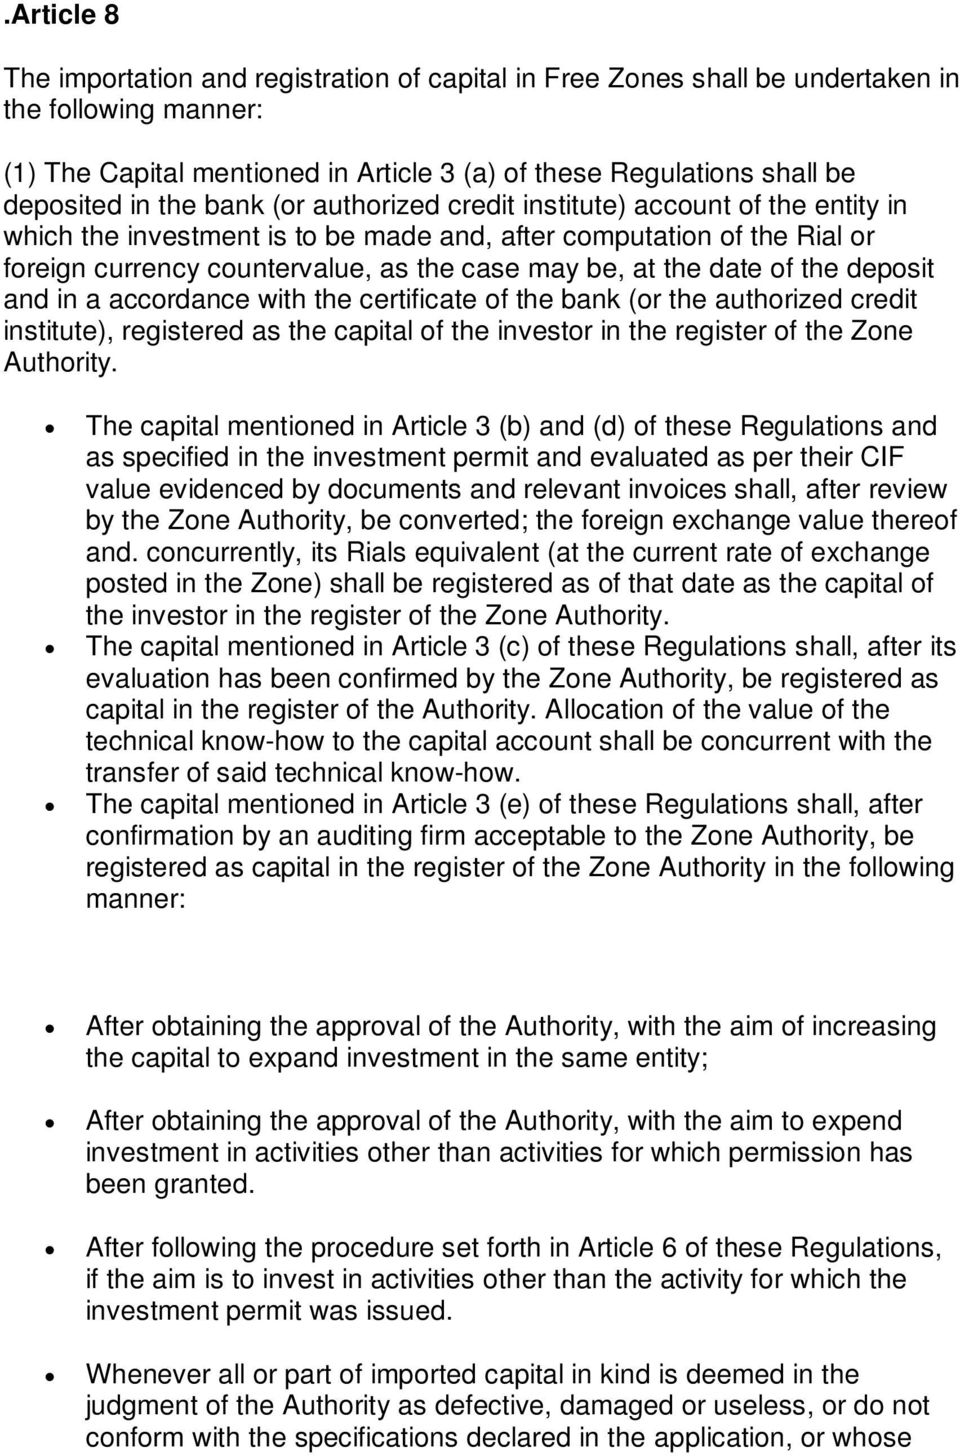 date of the deposit and in a accordance with the certificate of the bank (or the authorized credit institute), registered as the capital of the investor in the register of the Zone Authority.